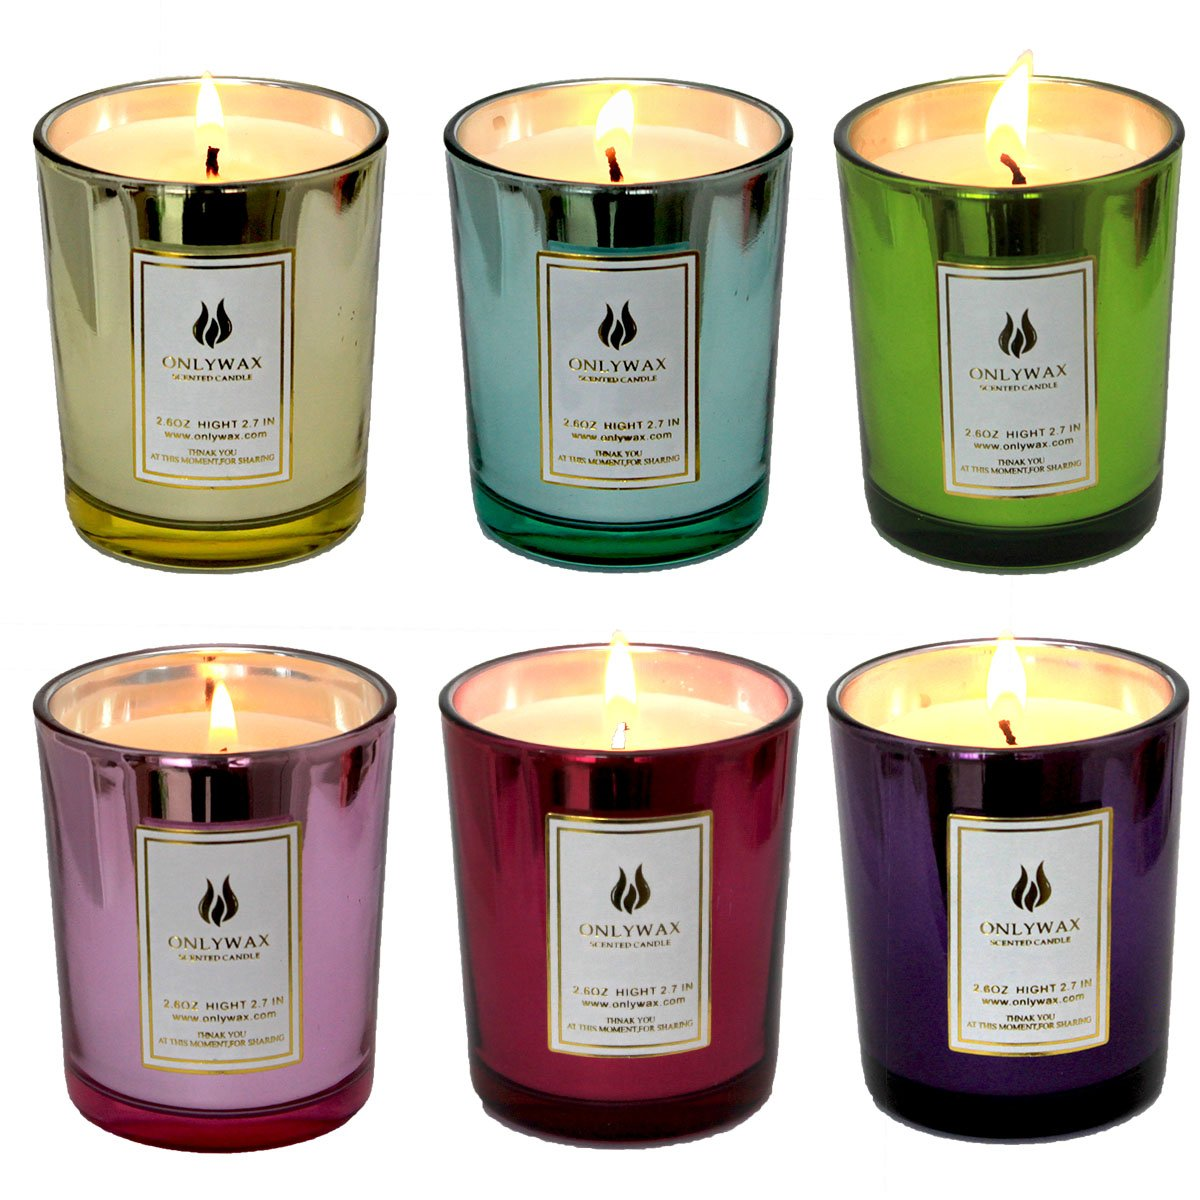 Set of 6 Scented Candles 100% Soy Wax Glass, Home Fragrance Candle Gifts. Onlywax